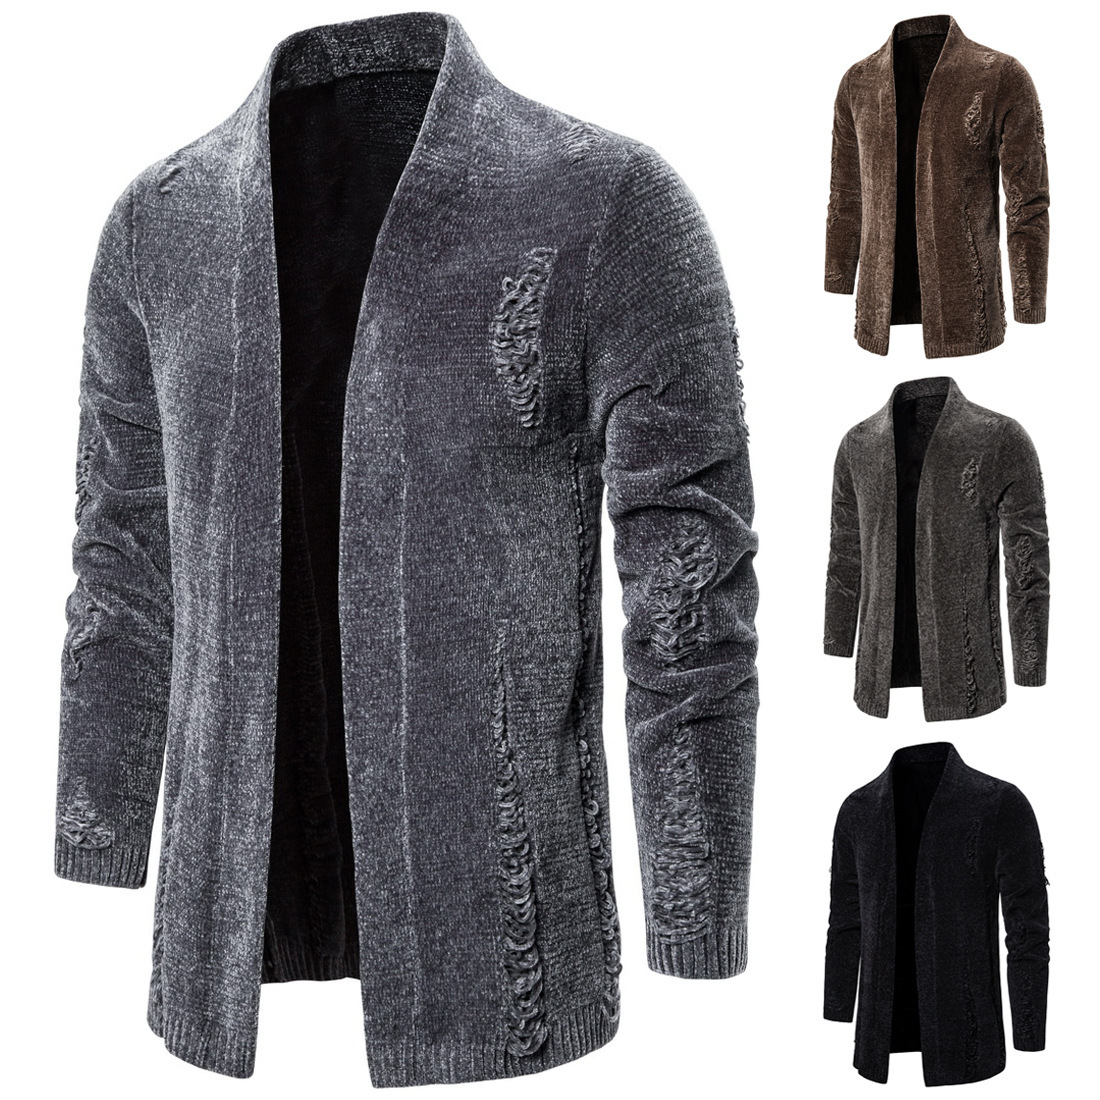 Men's Brand New Creative Holes Pure Color Spring And Autumn Personality Cardigan Sweater Coat Sweater Men Christmas Sweater Men